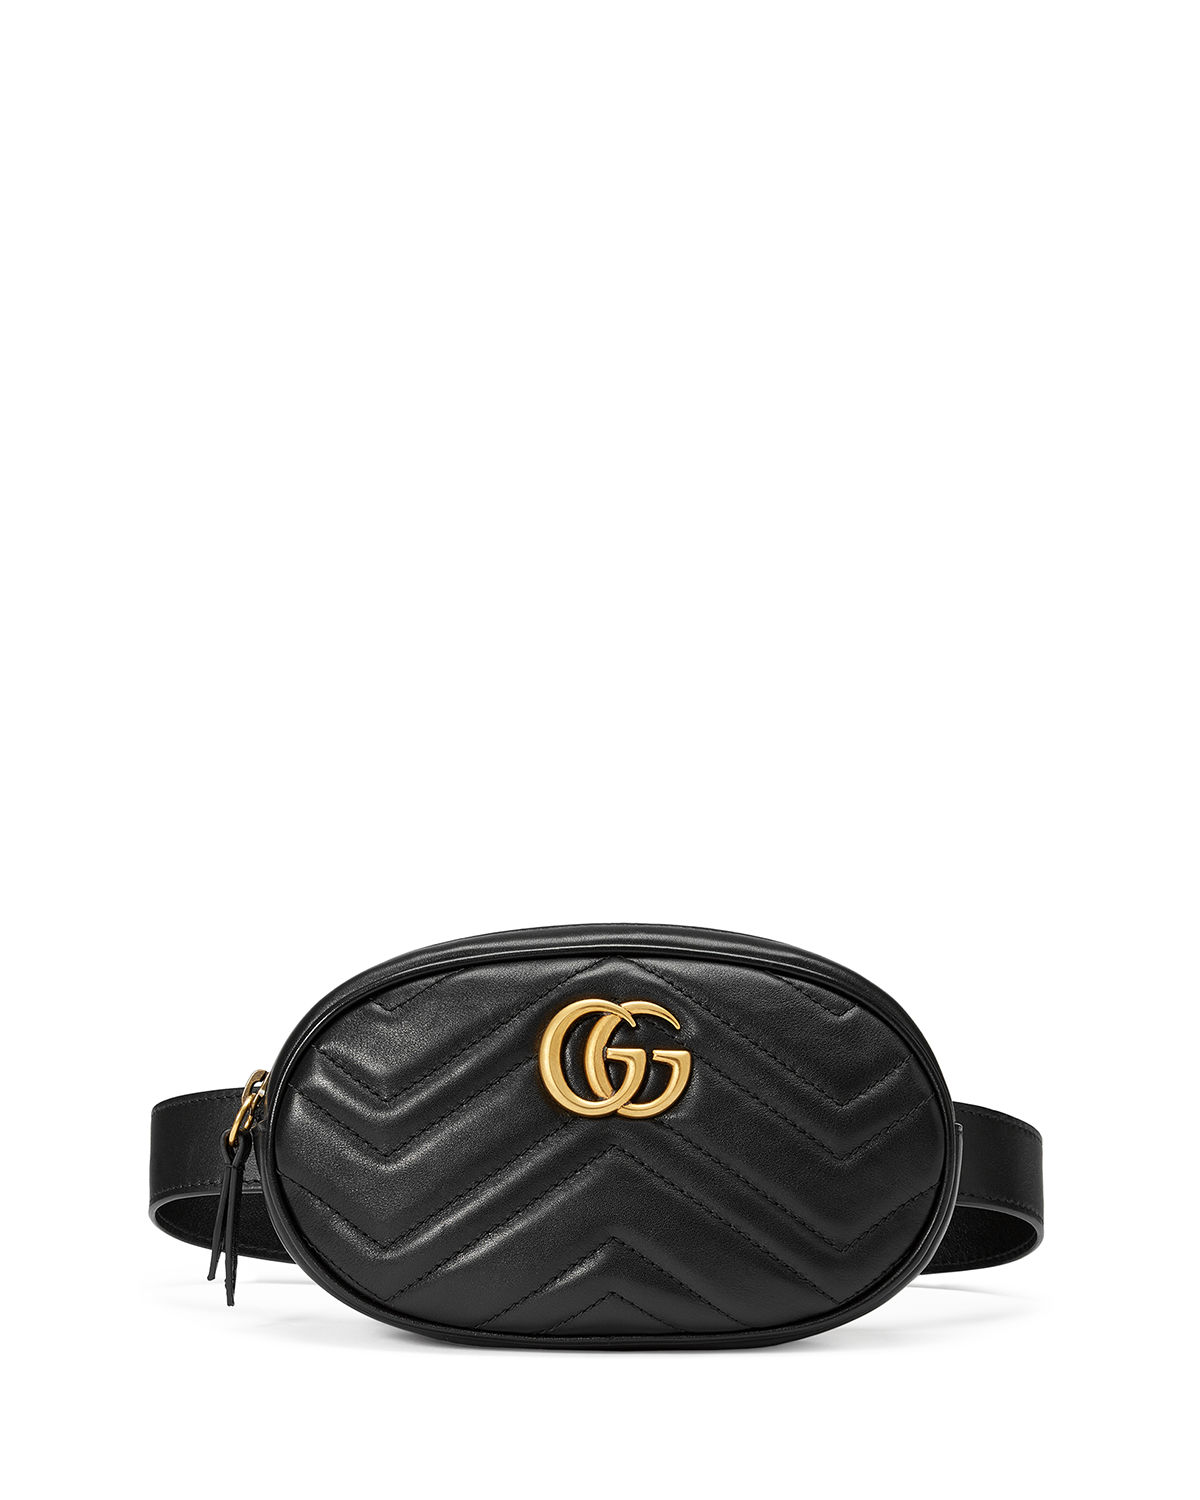 488727449f53 Gucci GG Marmont Small Matelasse Leather Belt Bag | Neiman Marcus